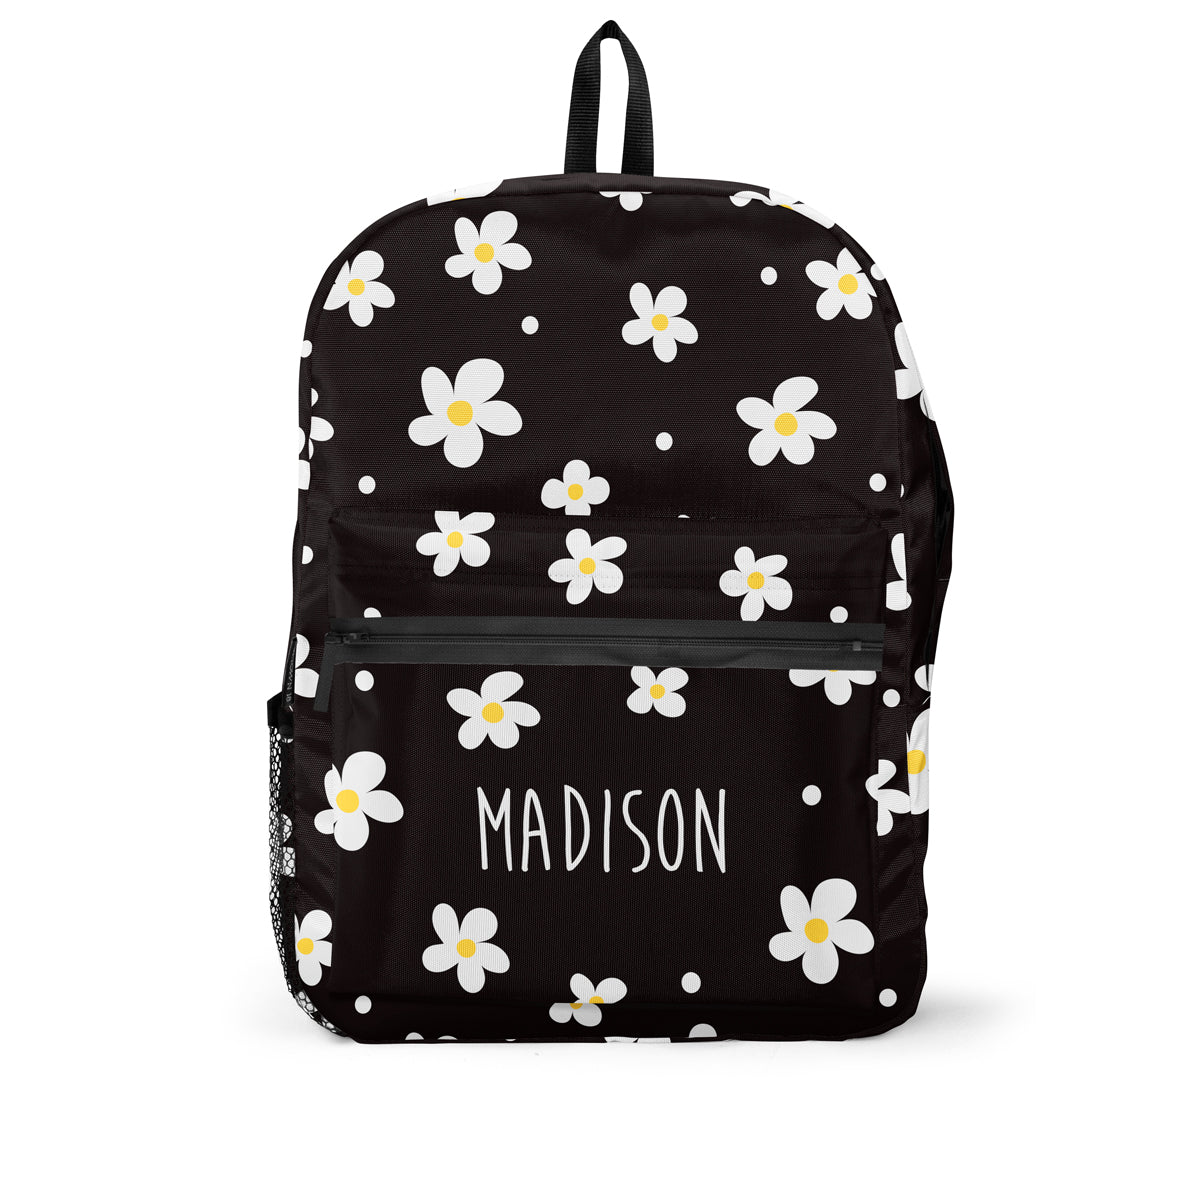 a4852d2e9170 1 ITEM ADDED TO BAG. Ditzy Floral Backpack